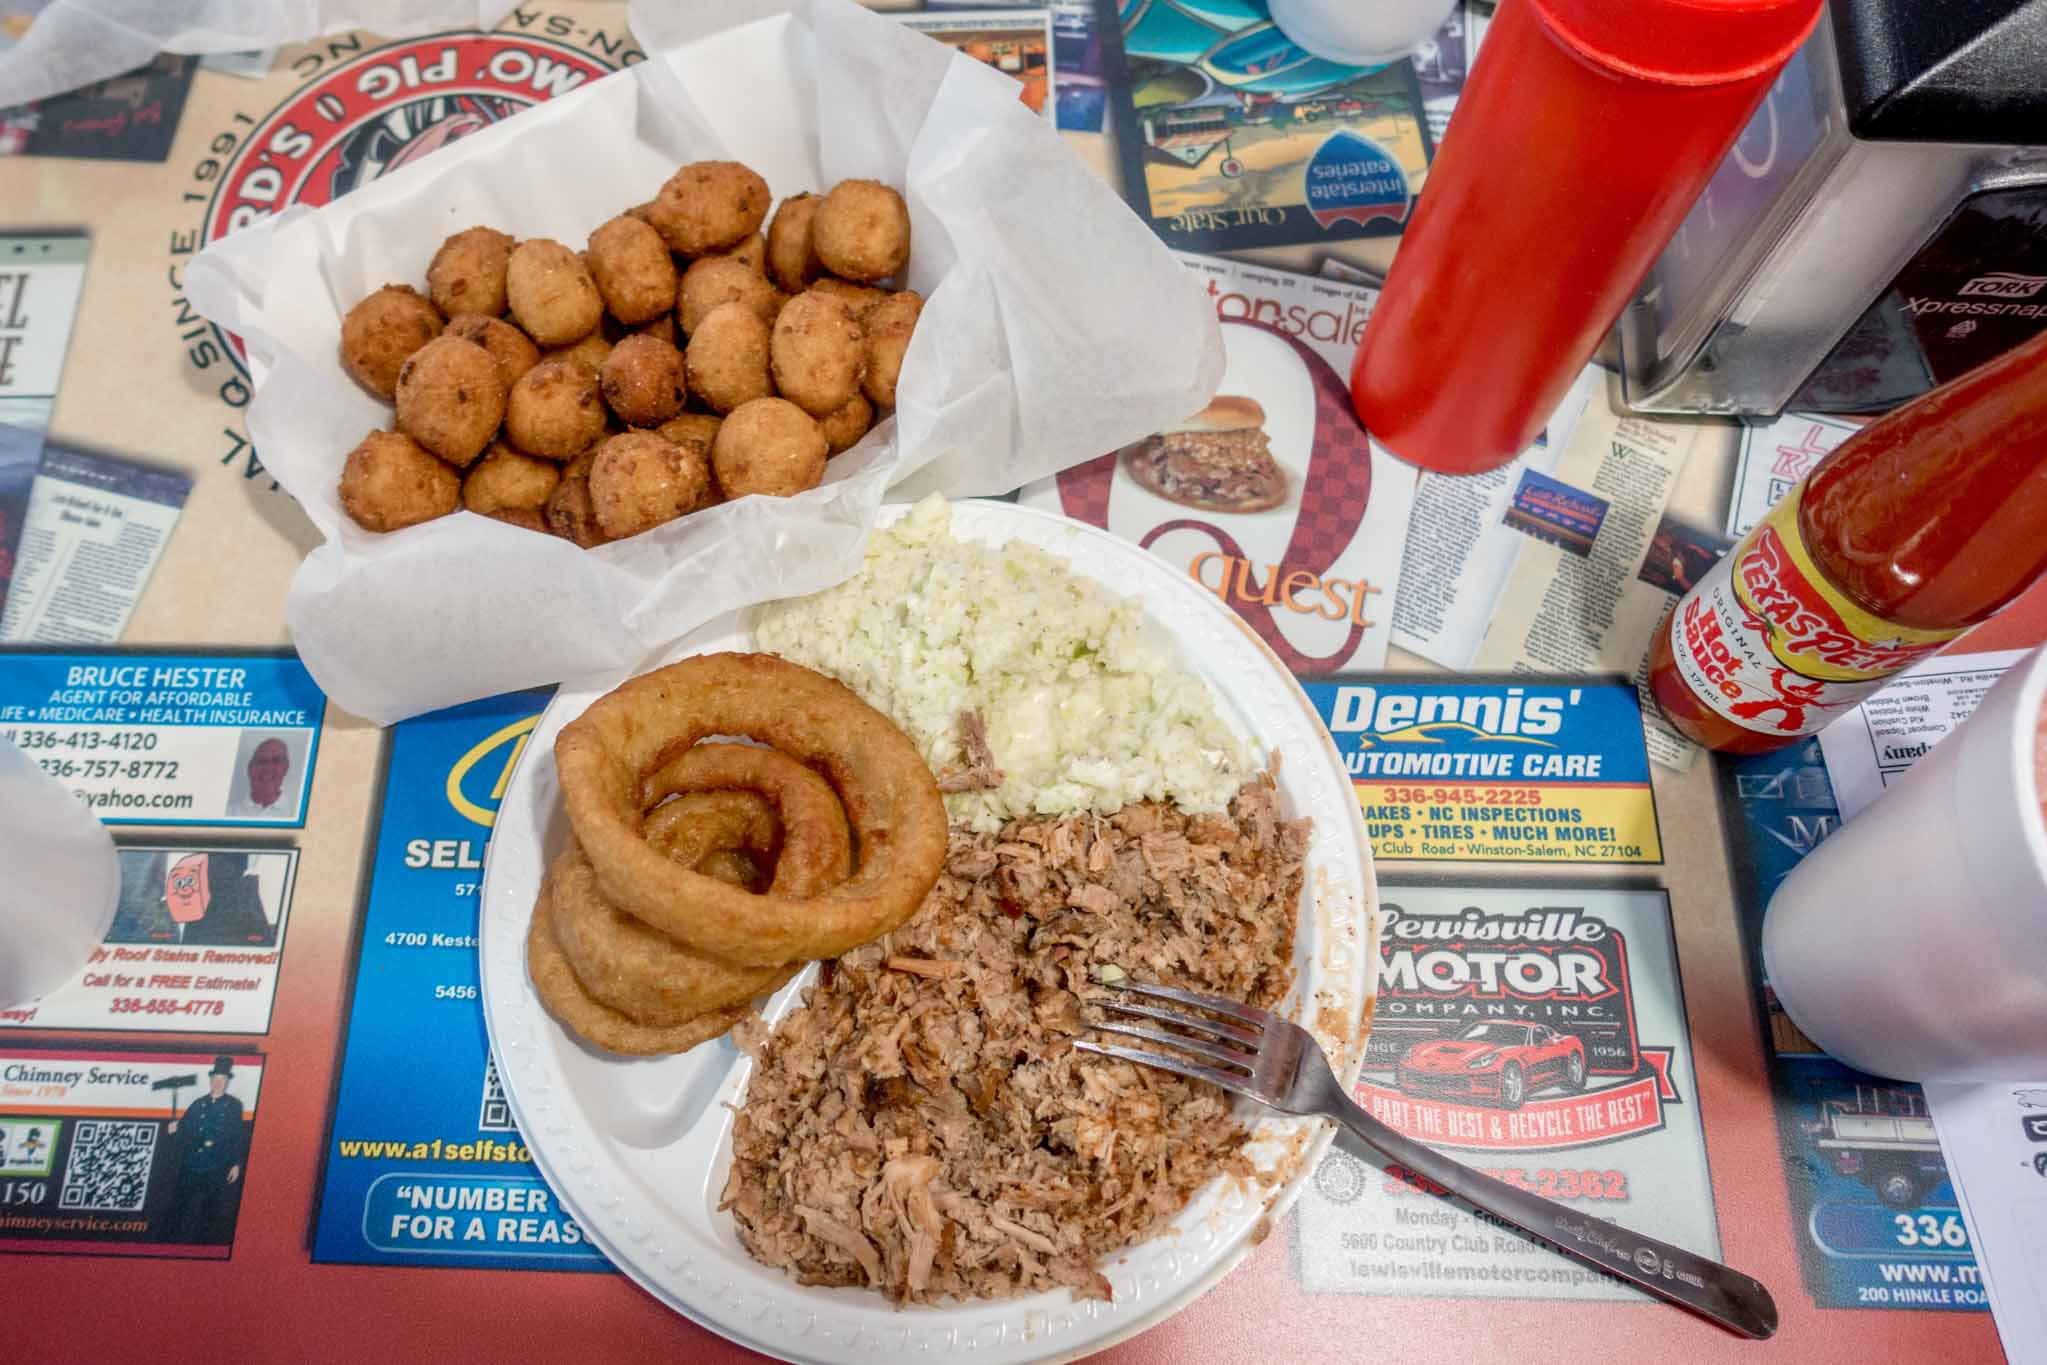 Barbecue, onion rings, and hushpuppies on plates